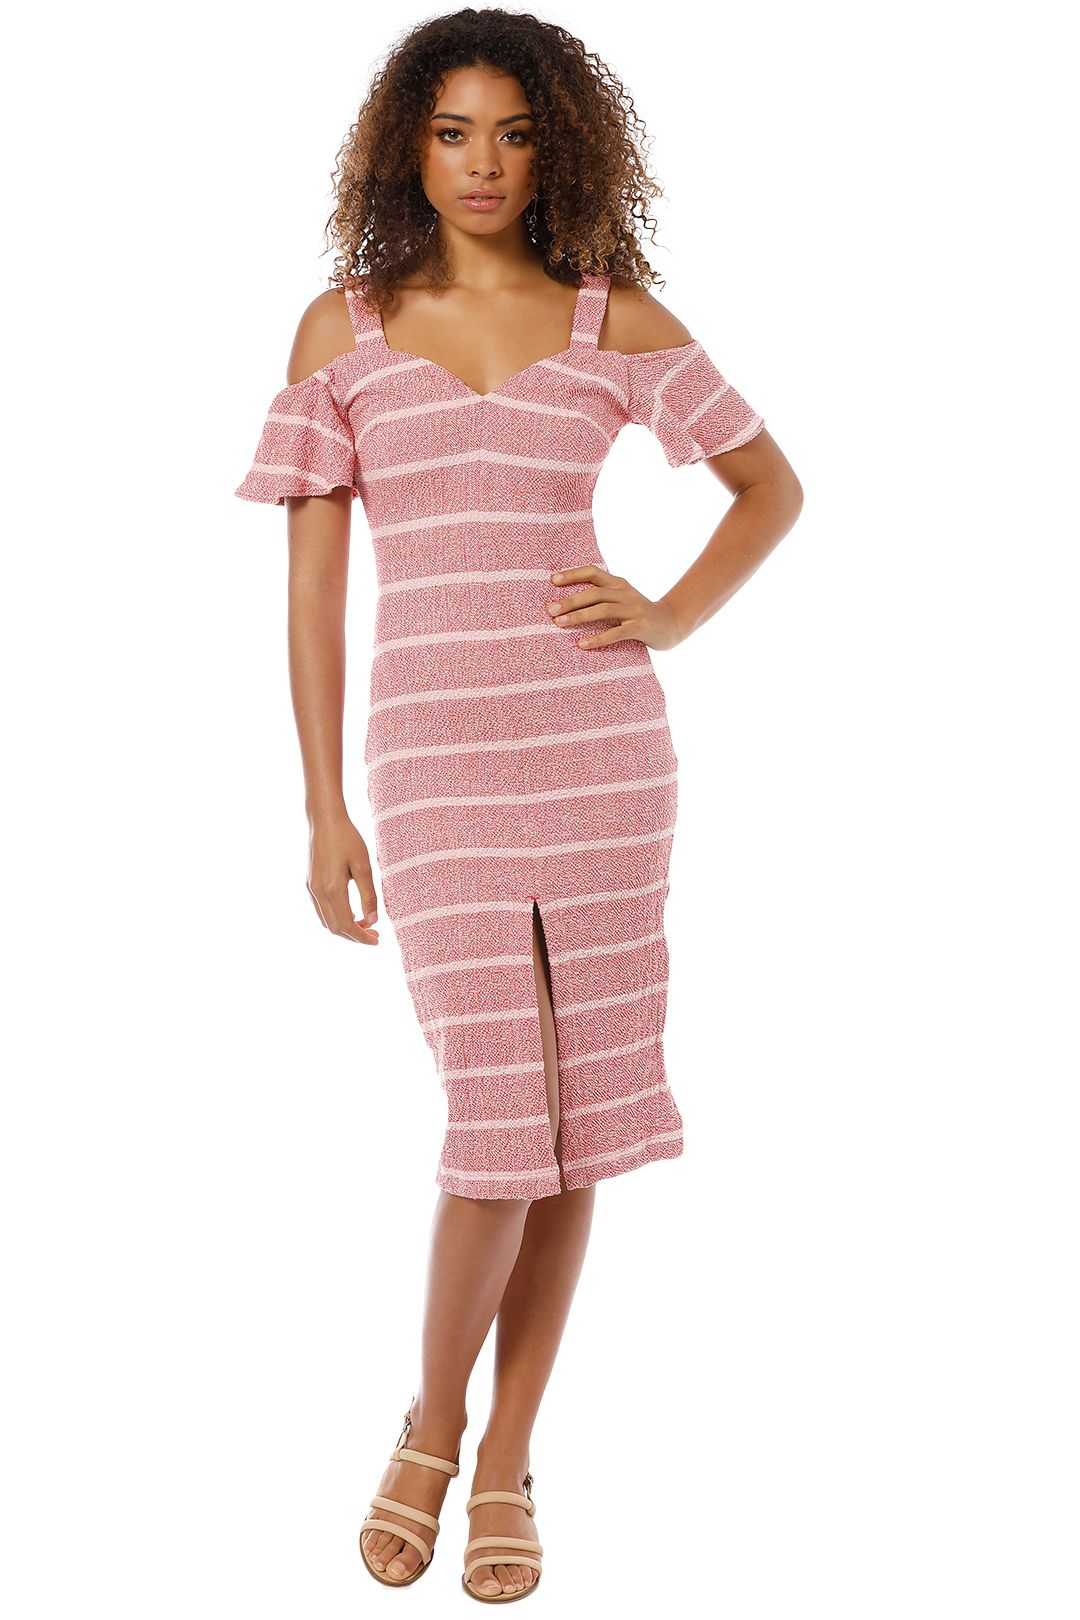 Finders Keepers - Destination Dress - Pink - Front